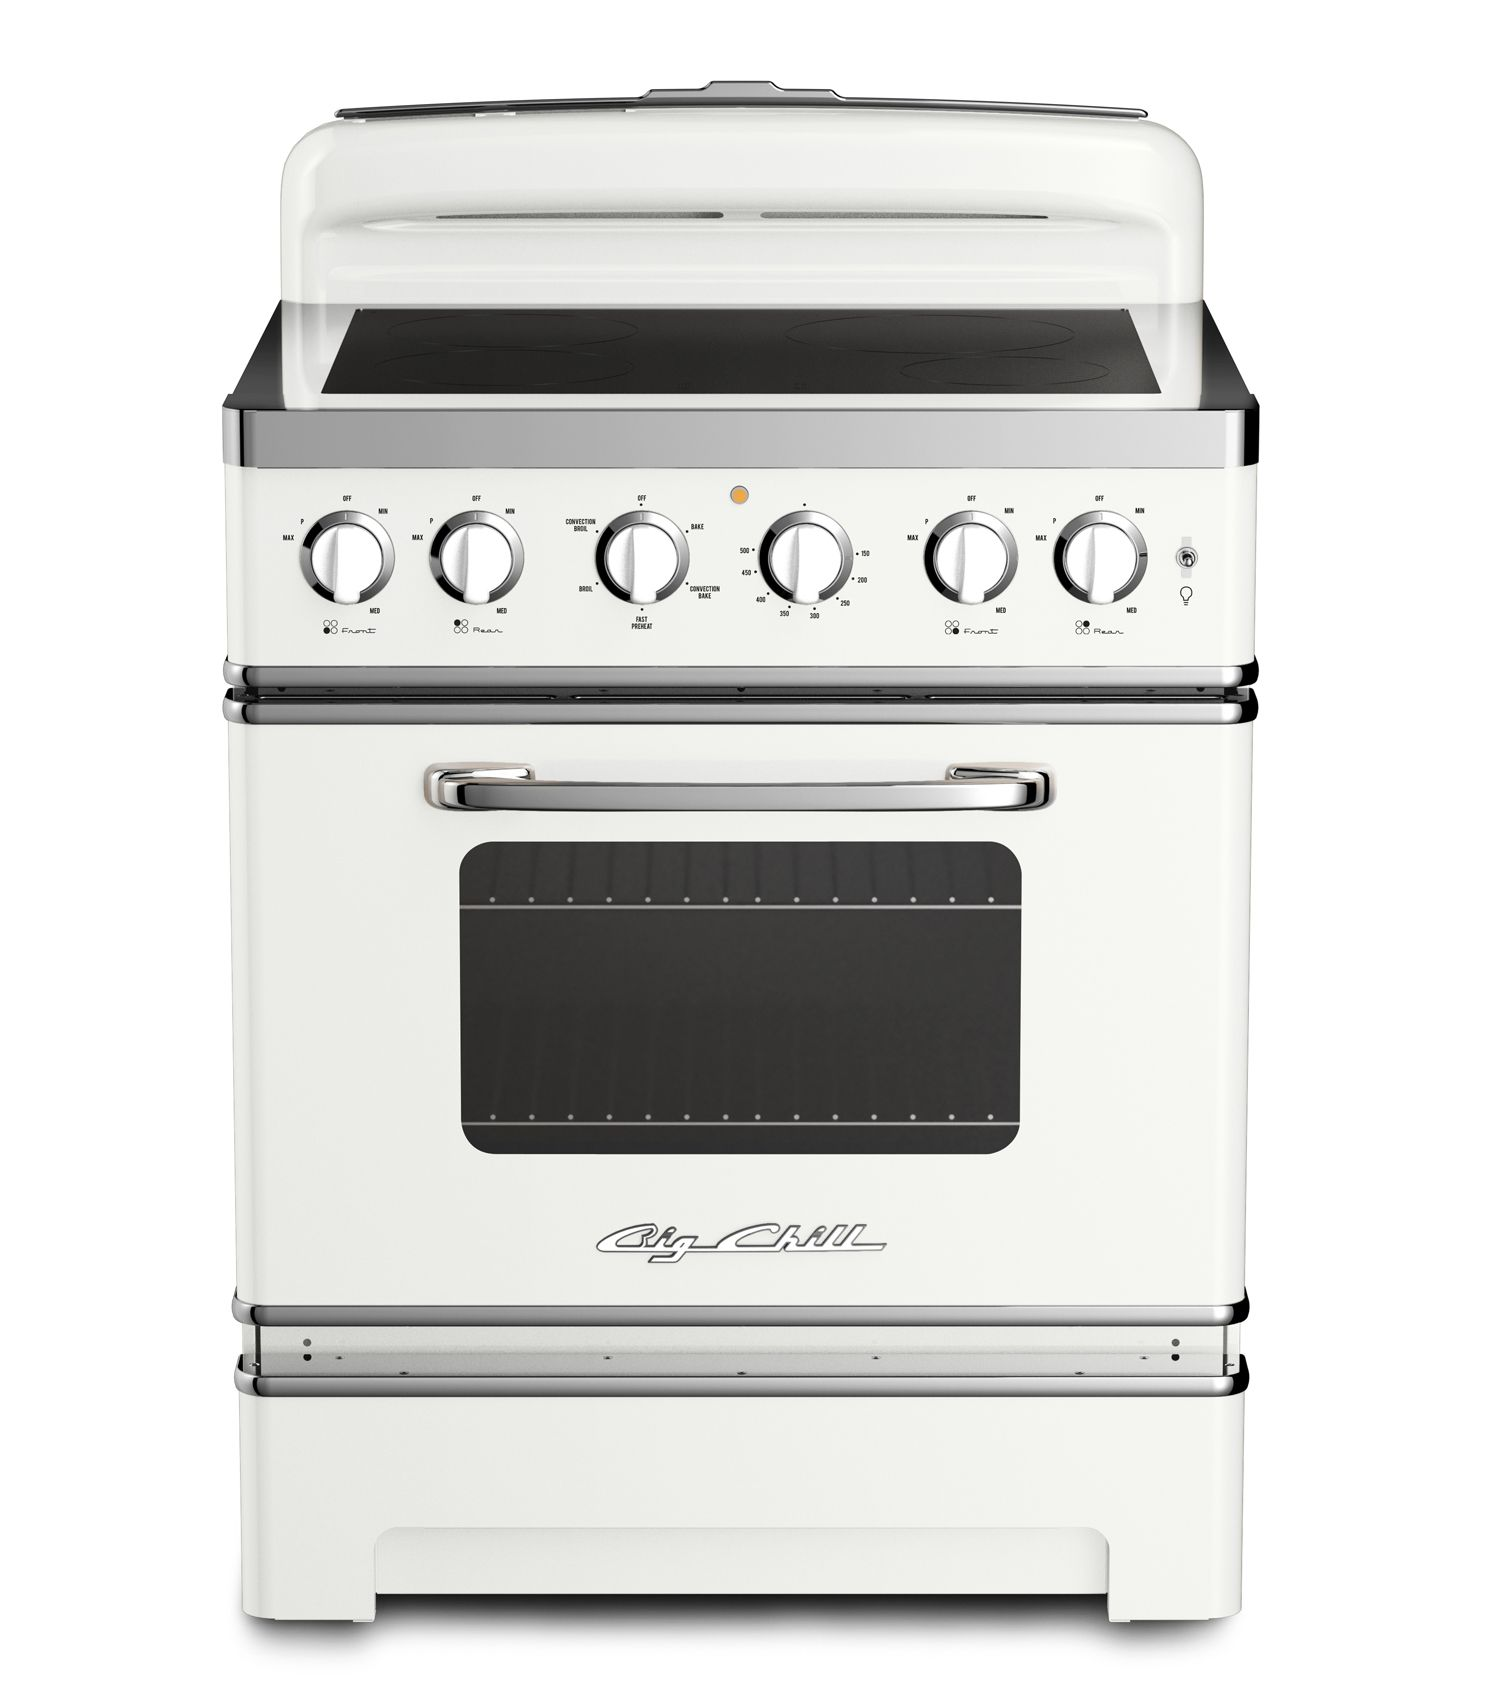 30″ Retro Electric Induction Range | Ranges, Kitchens and Big chill